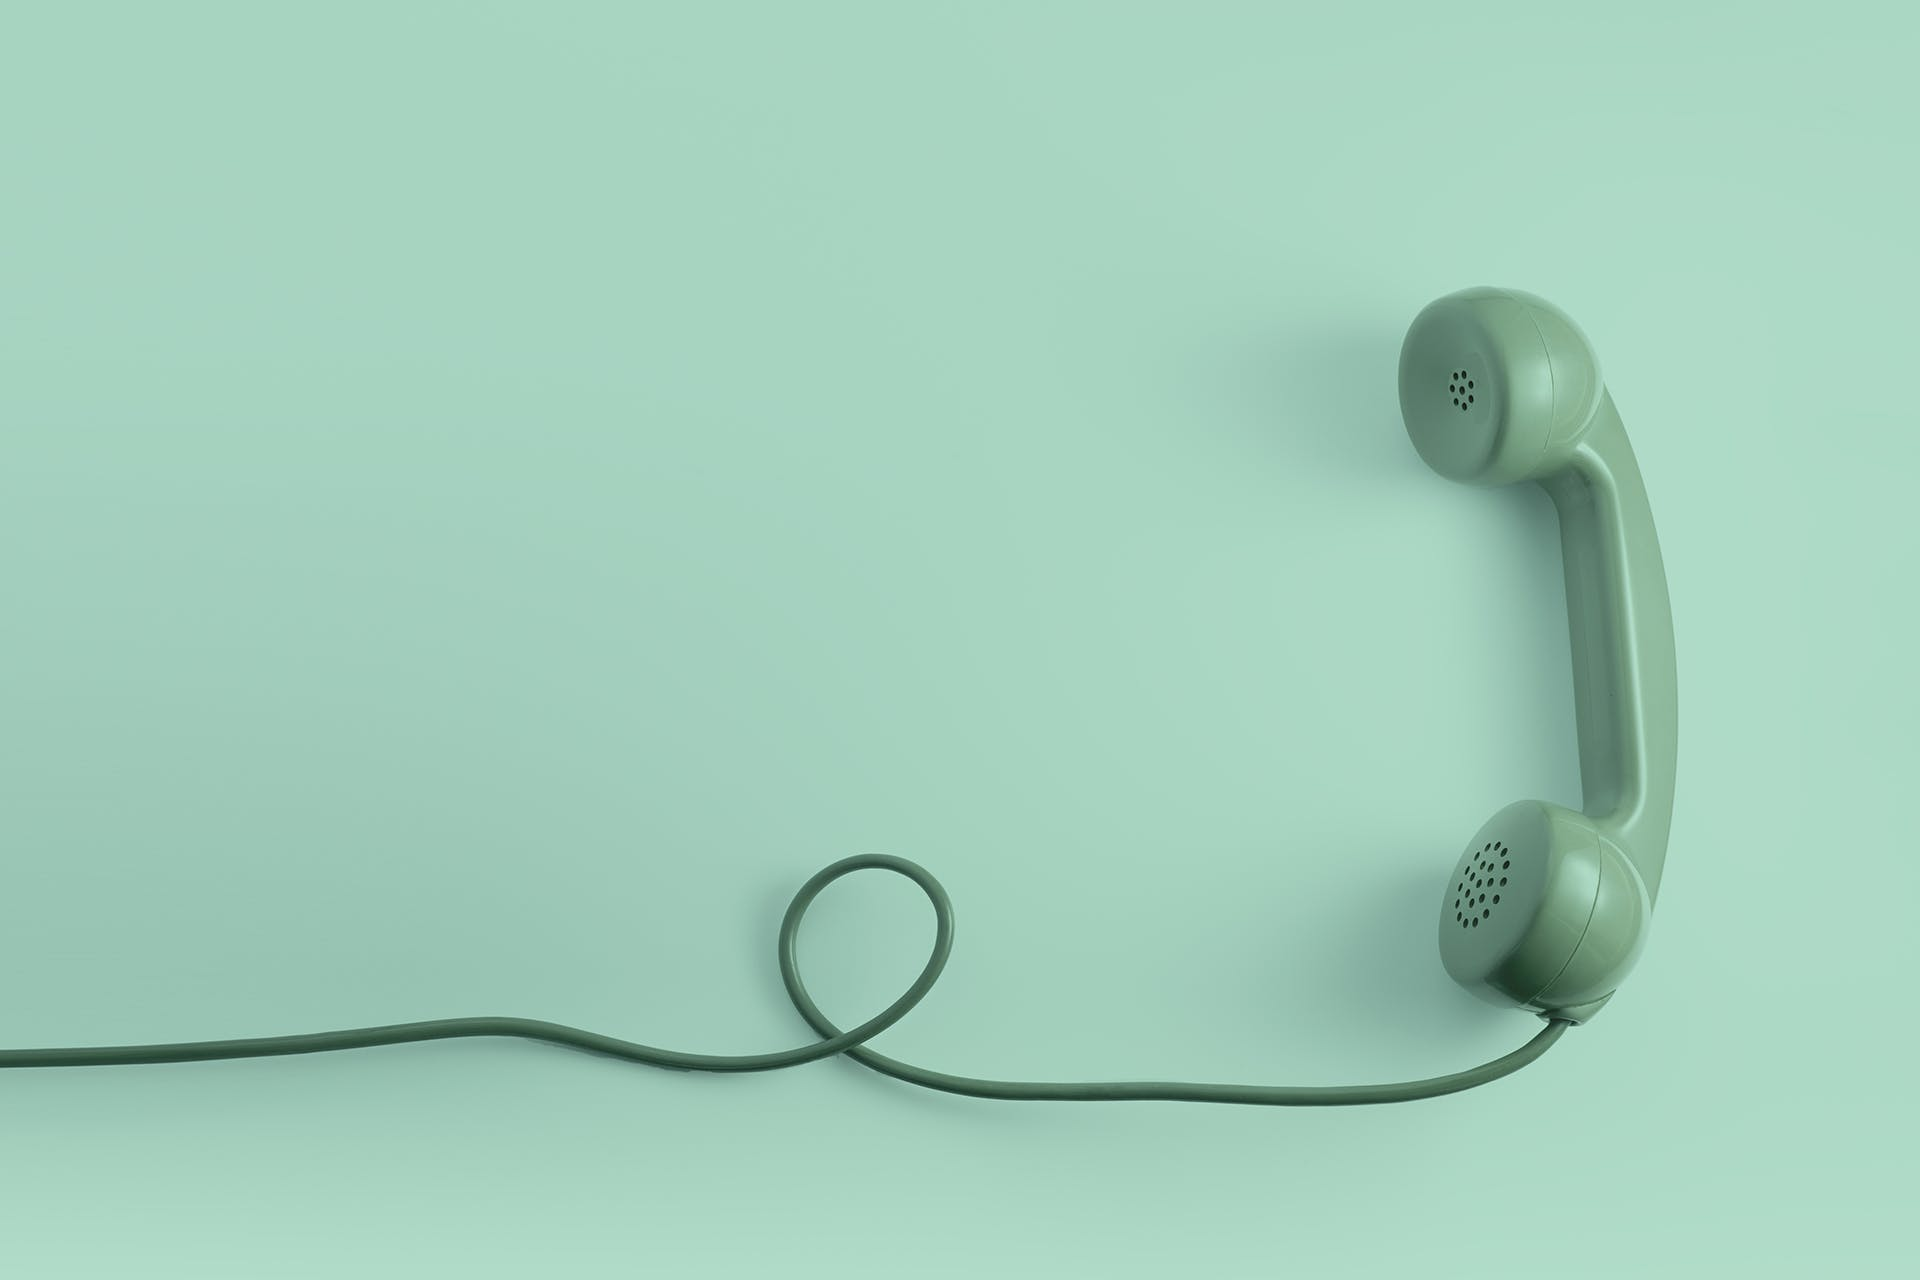 Green old fashioned telephone. Header image for blog post: why word of mouth marketing is important.